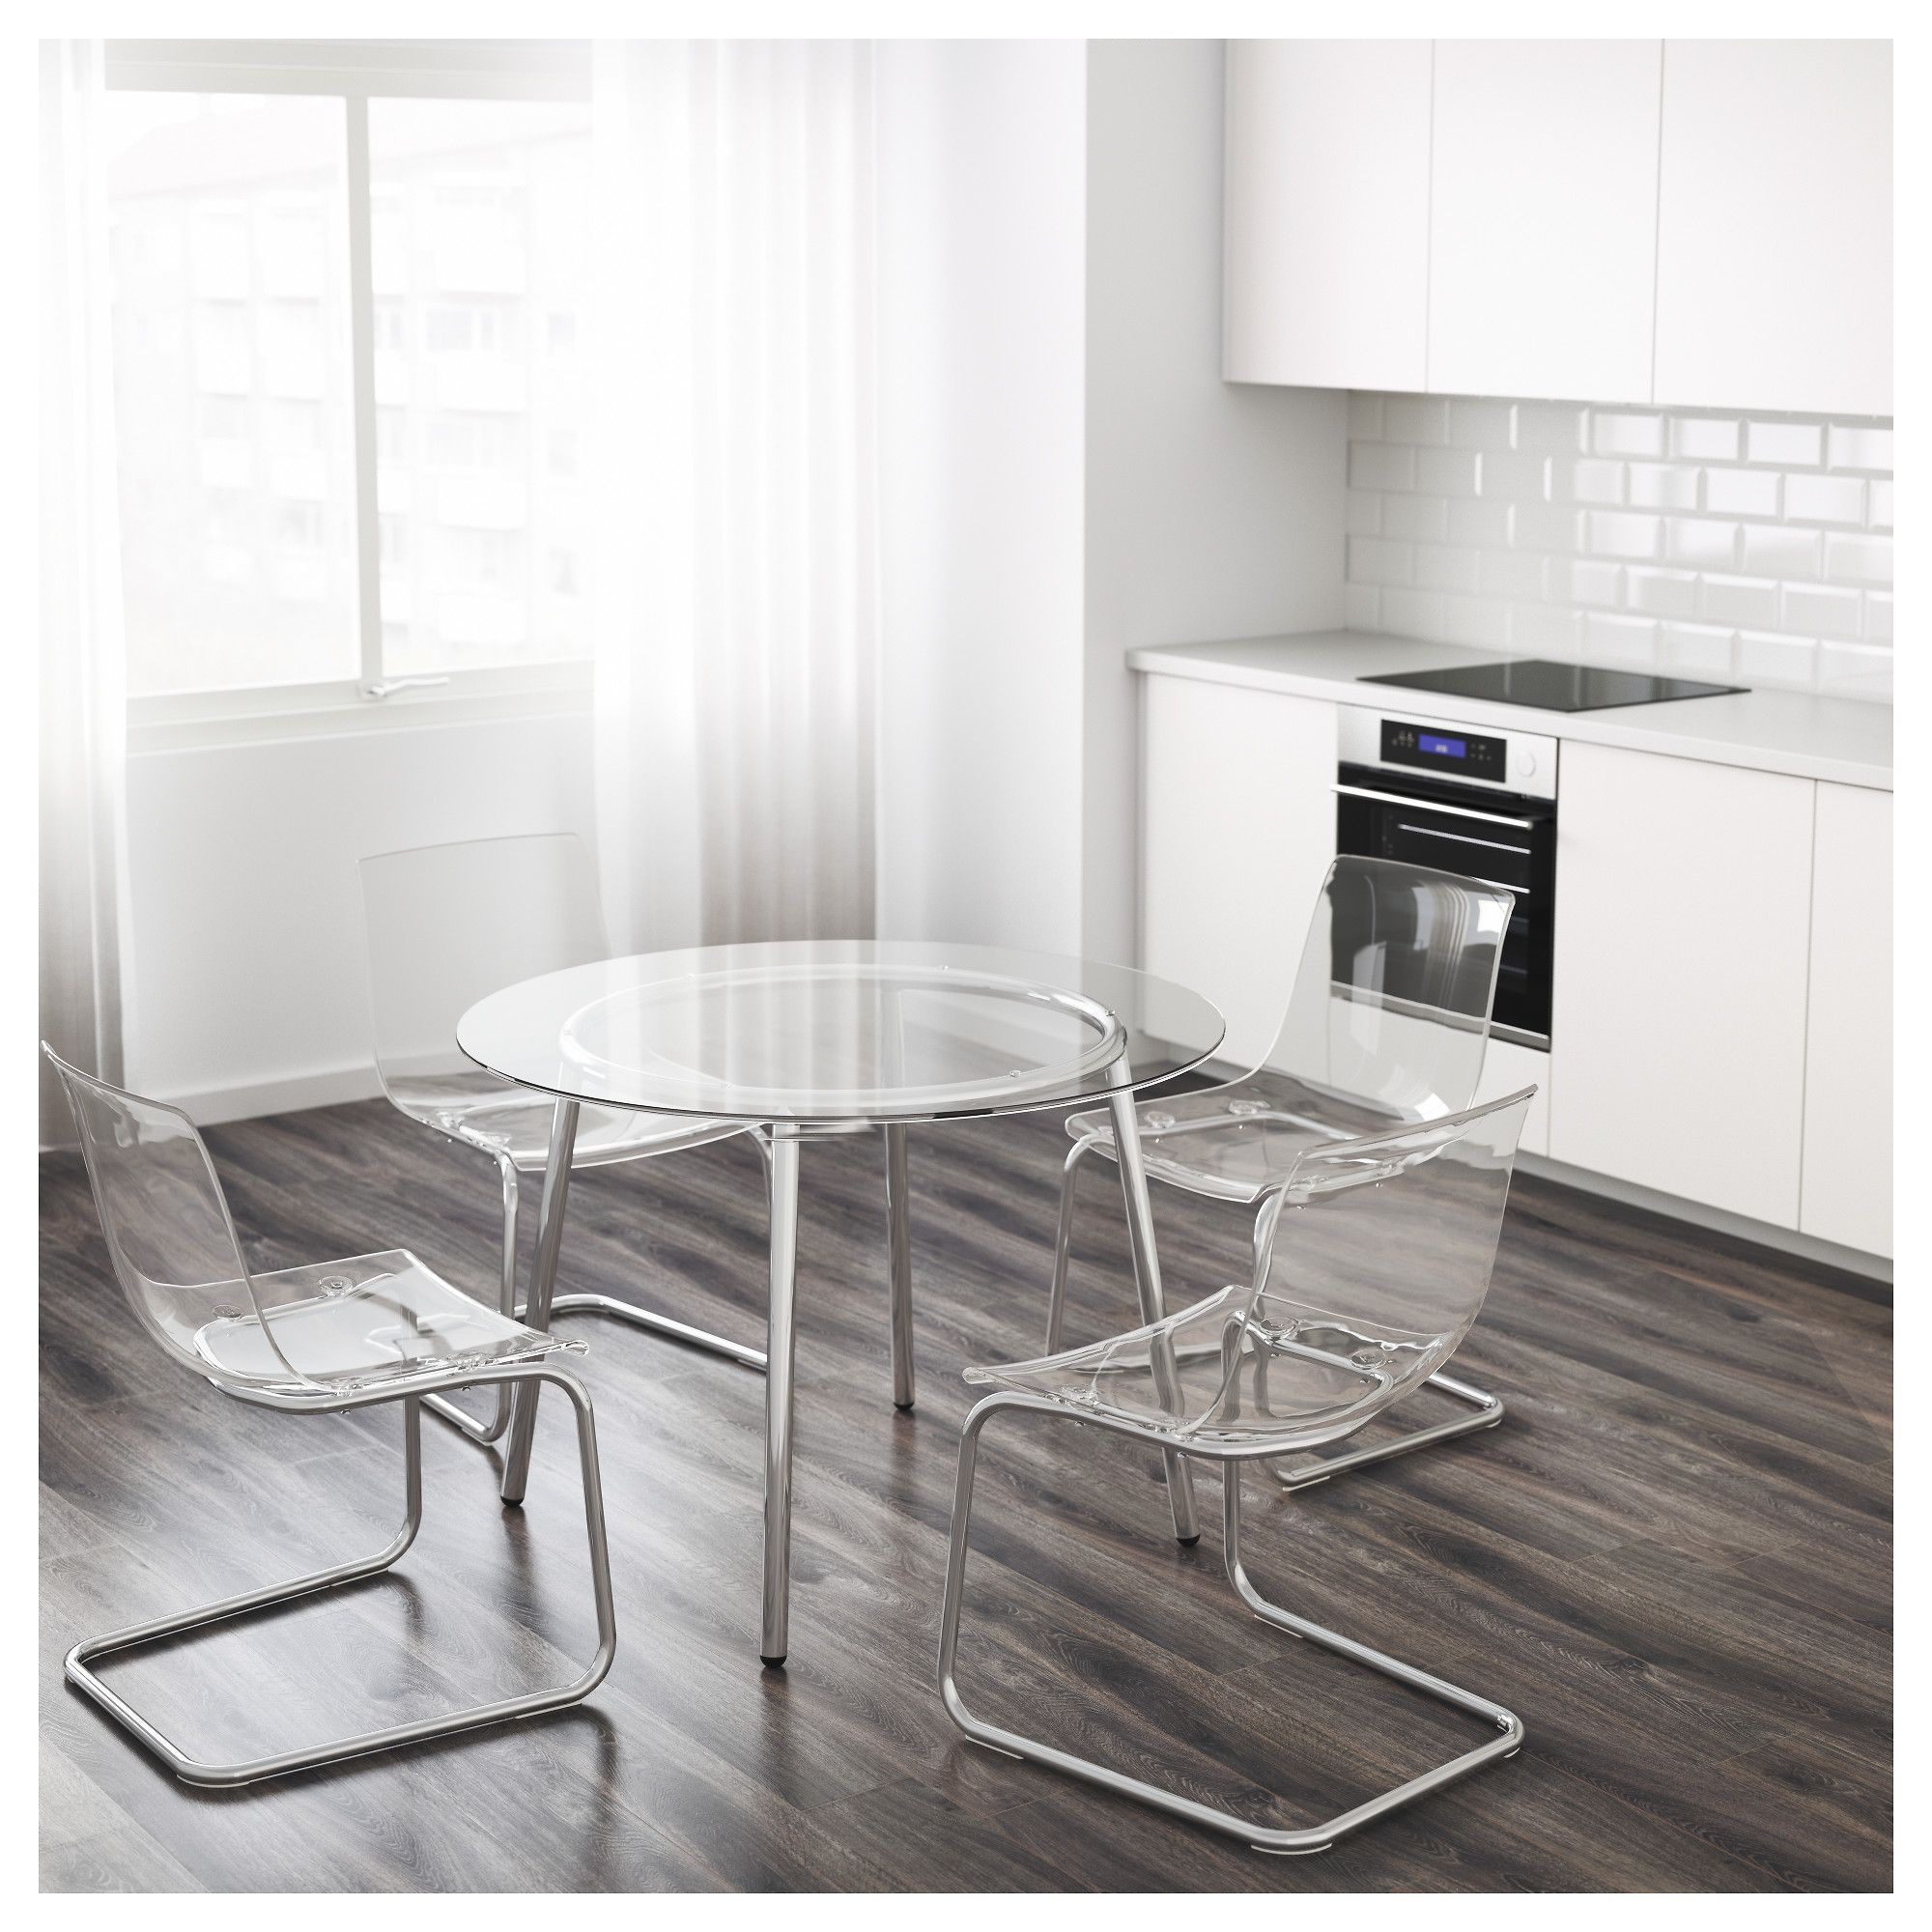 Salmi Table Ikea Perfect A Little Narrower Would Be Great